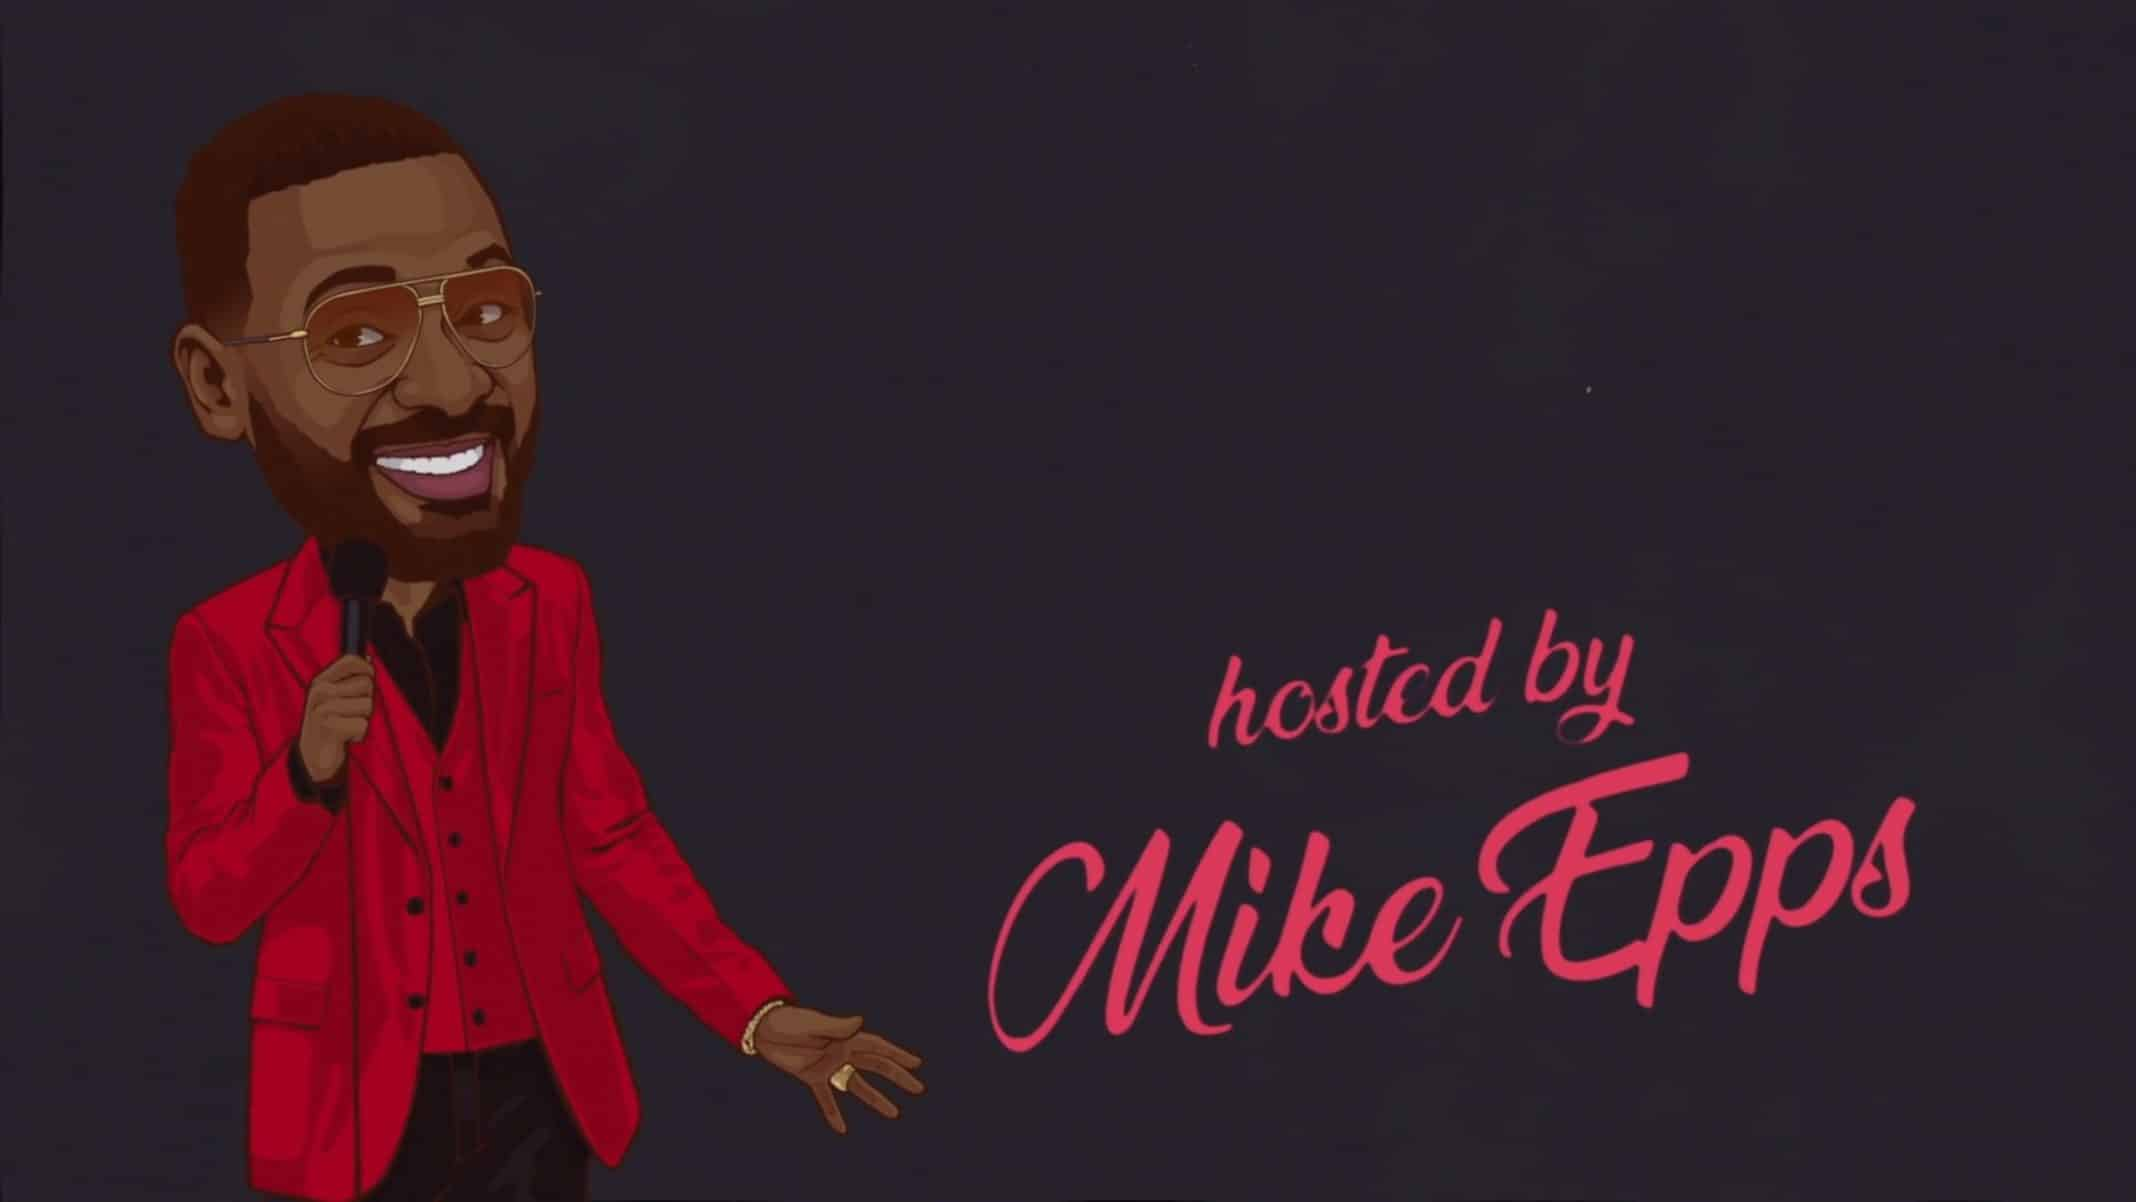 An illustration of Mike Epps